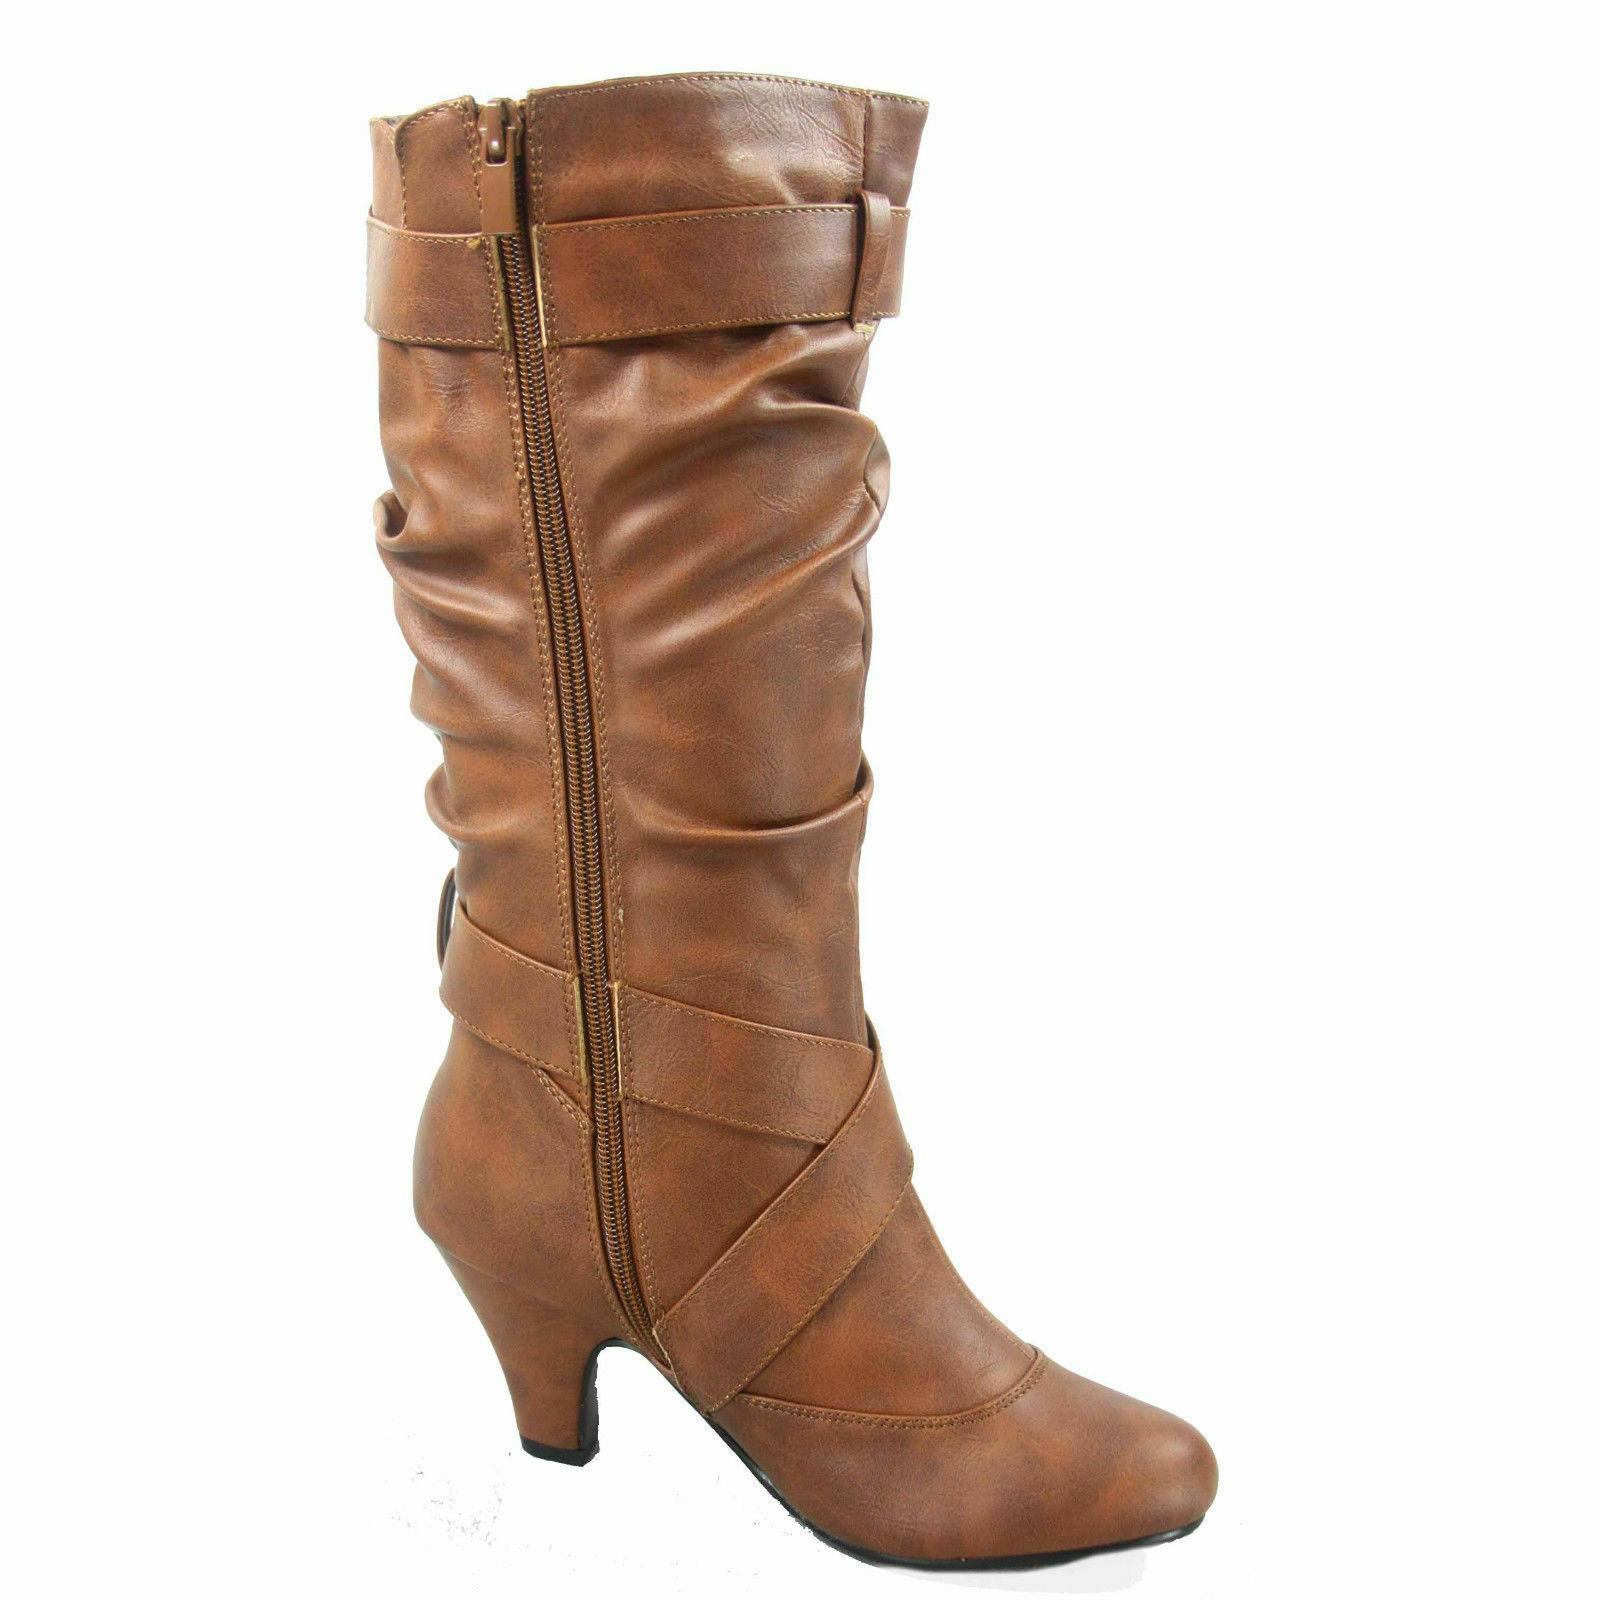 Women's Fashion Low Heel Zipper Slouchy Mid-Calf Boots Shoes All - NEW